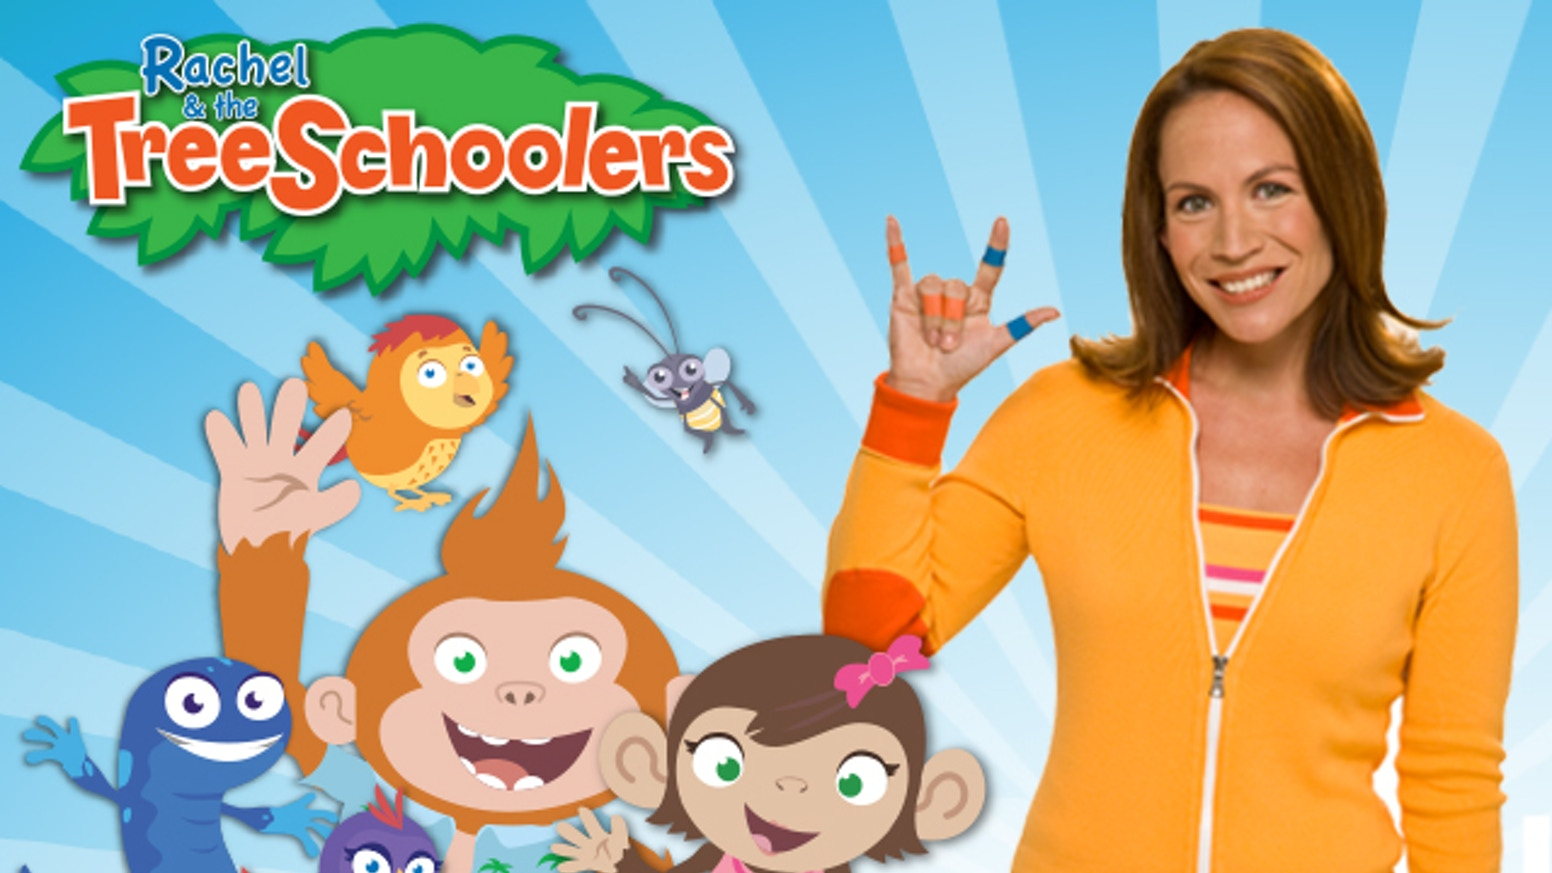 Rachel & the TreeSchoolers: A PhD backed children's series, delivered in 12 musical episodes. Brought to you by YOU!